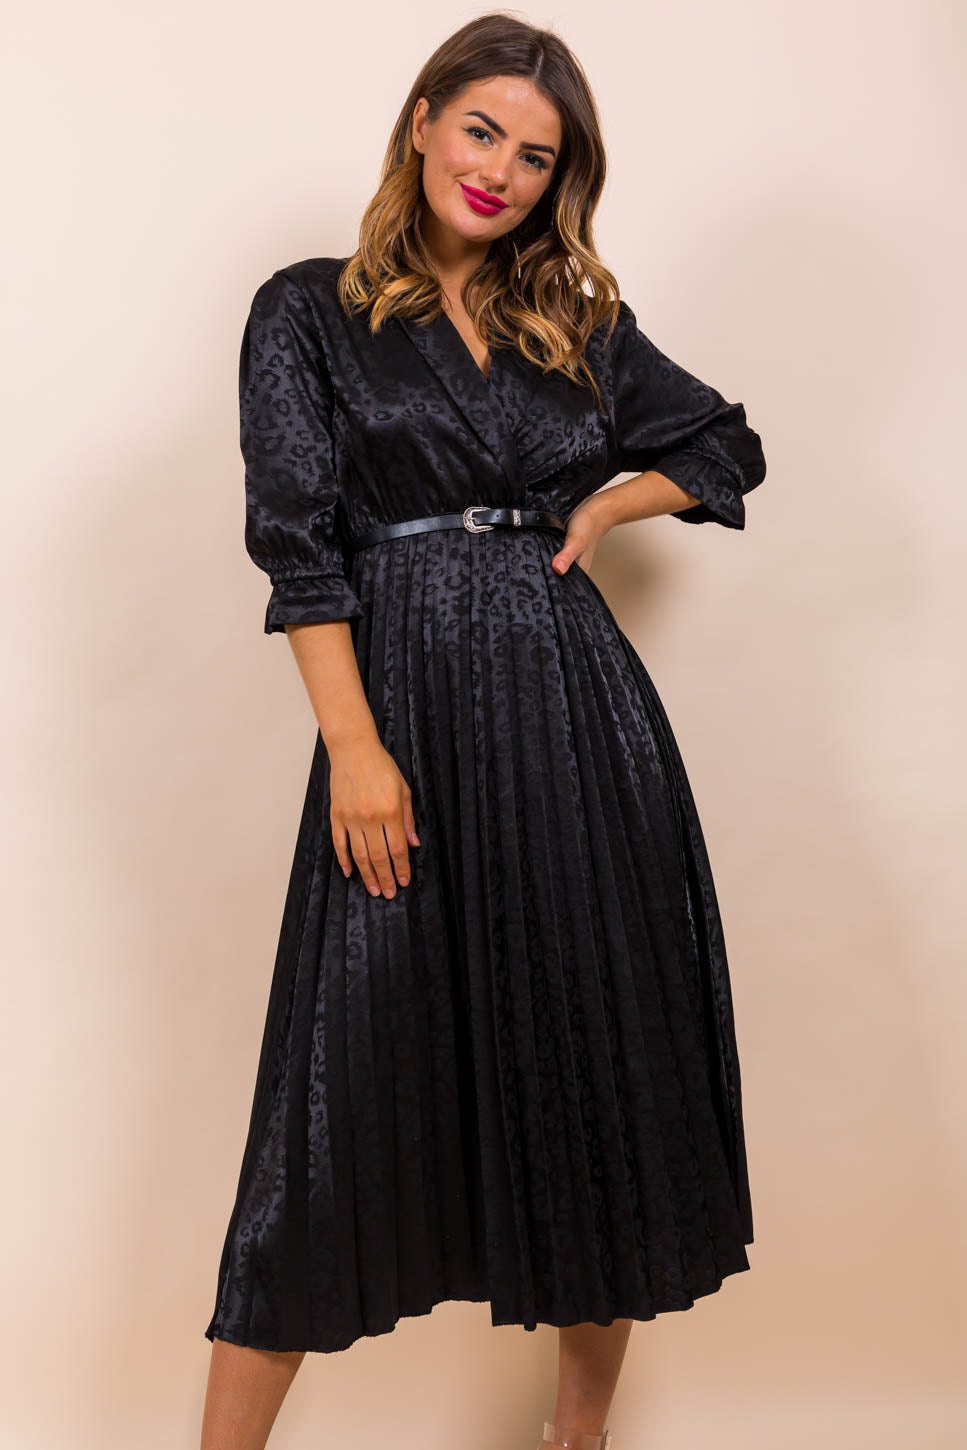 Finest Moment - Midi Dress In BLACK/WESTERN-BELT